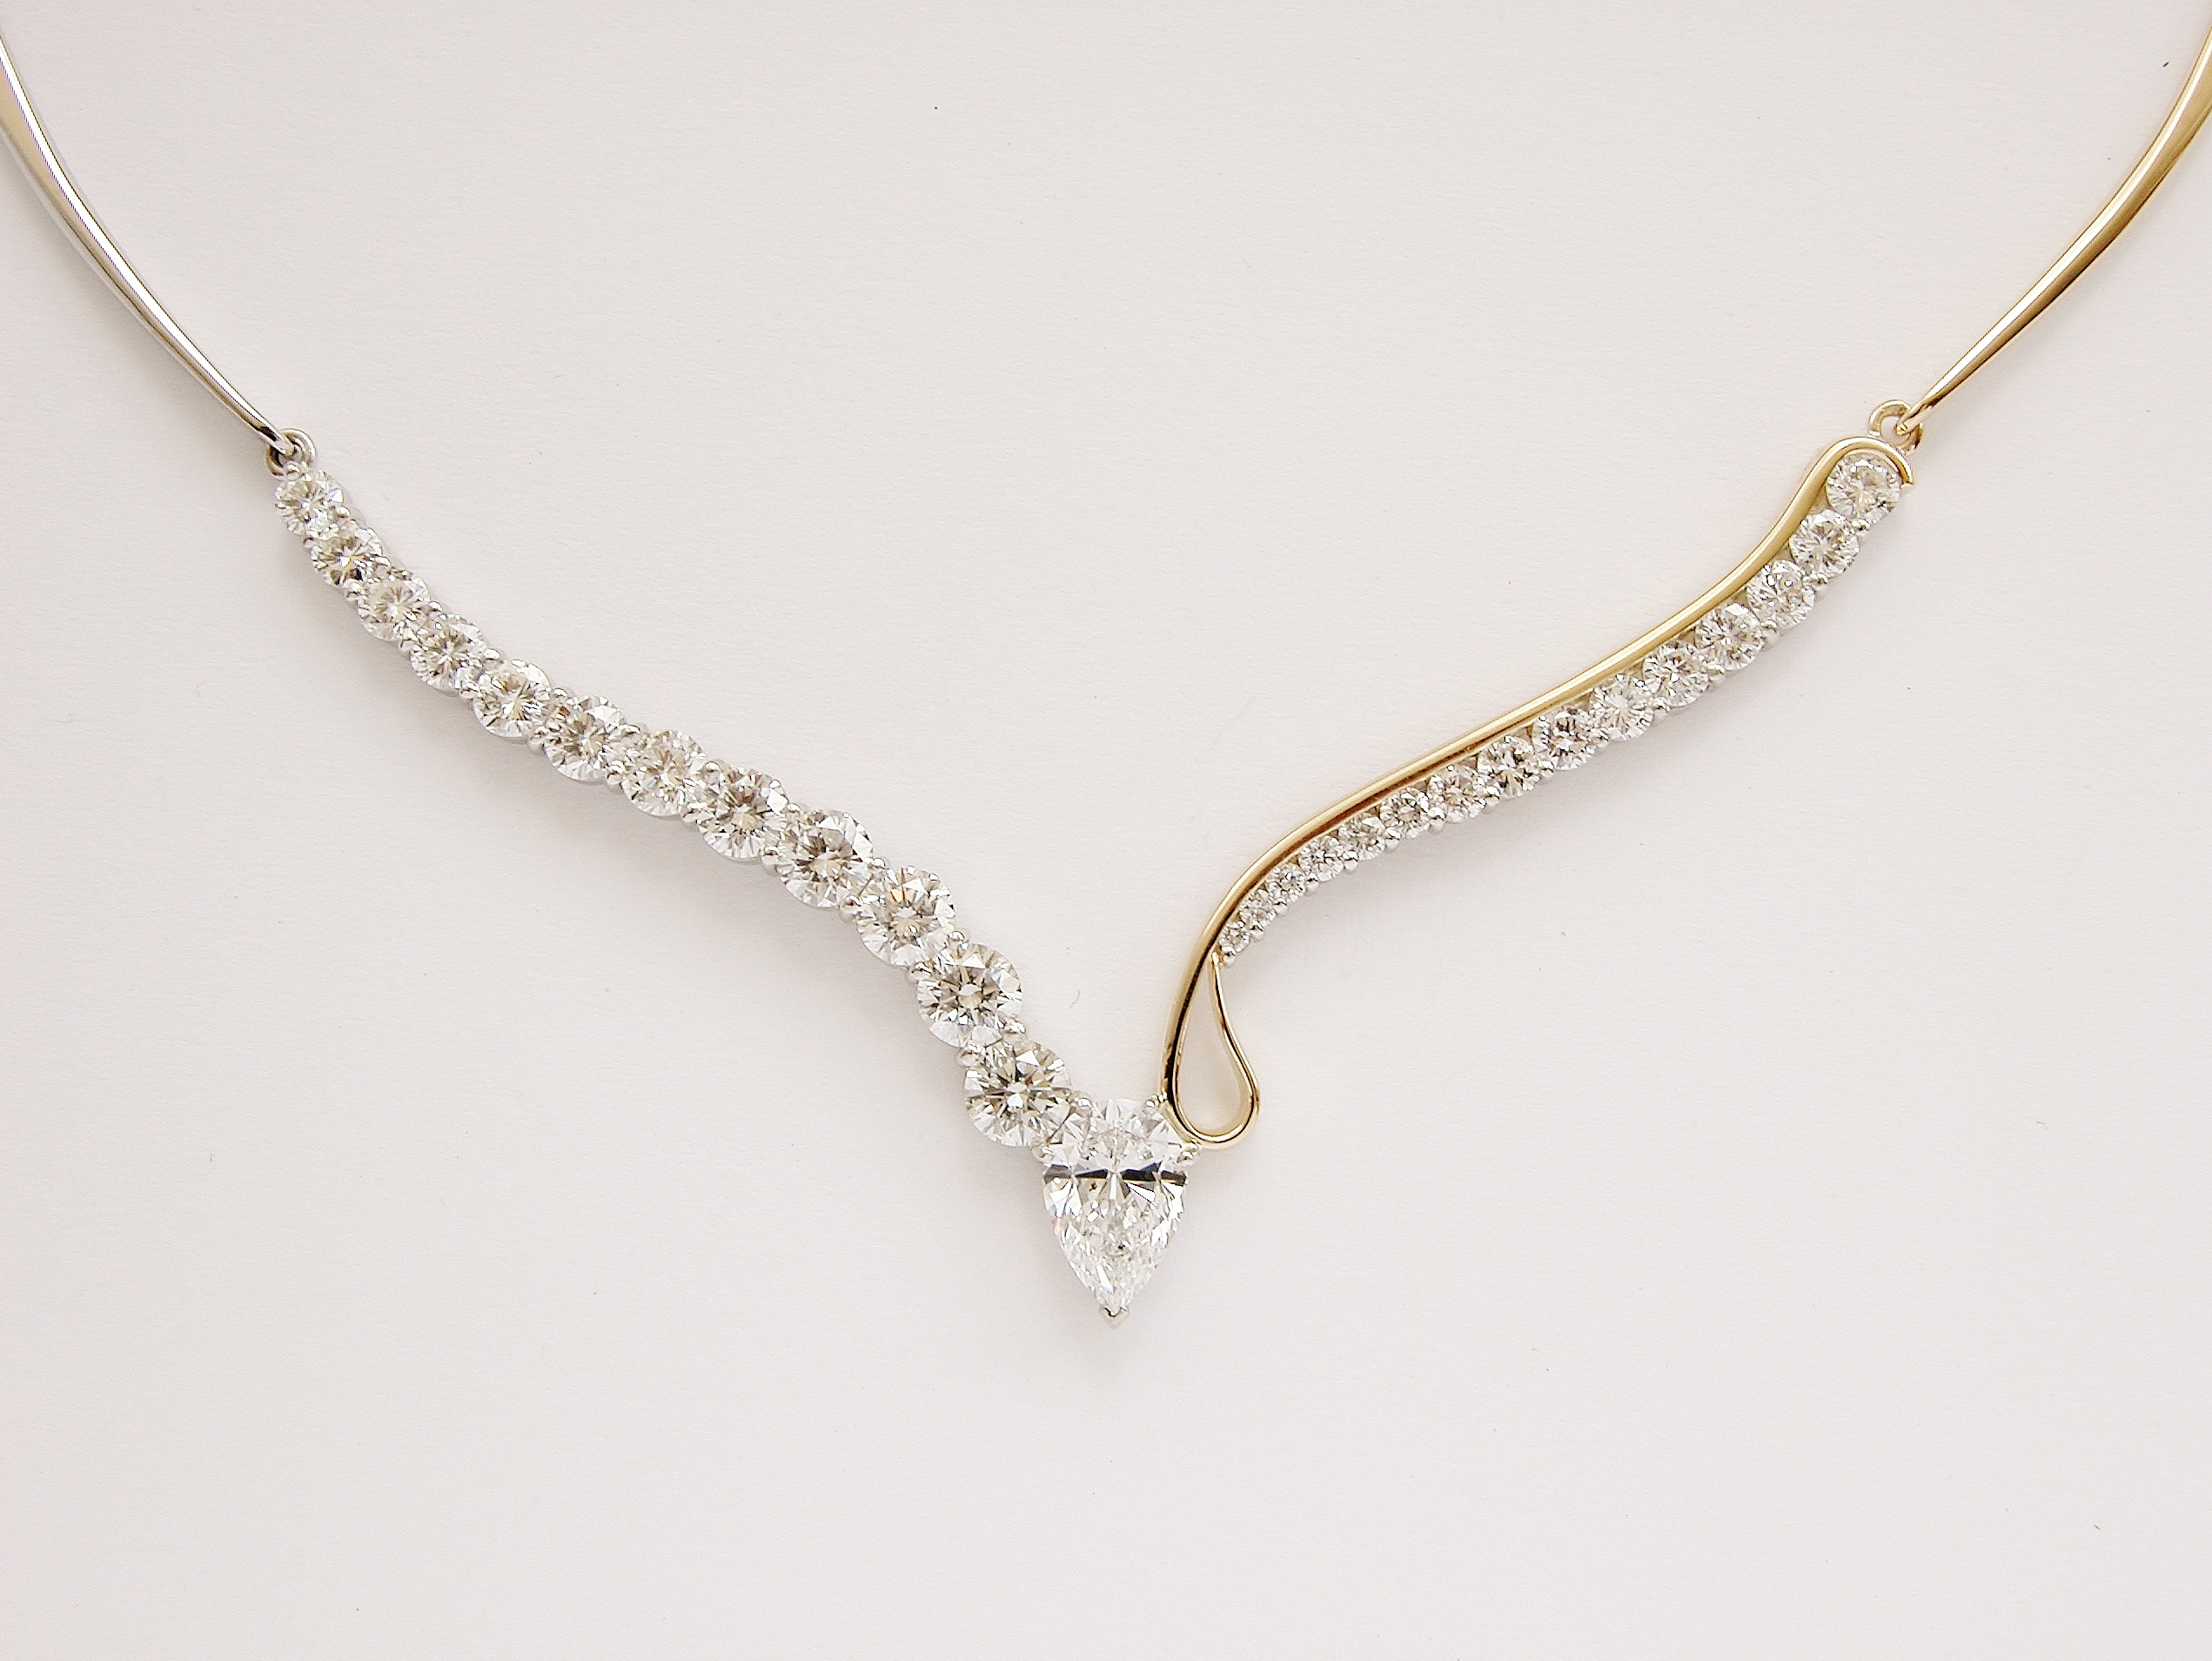 Bespoke Single Pear shaped diamond & 27 stone round brilliant cut diamond necklace mounted in platinum & 18ct.yellow gold with individually hand crafted links.